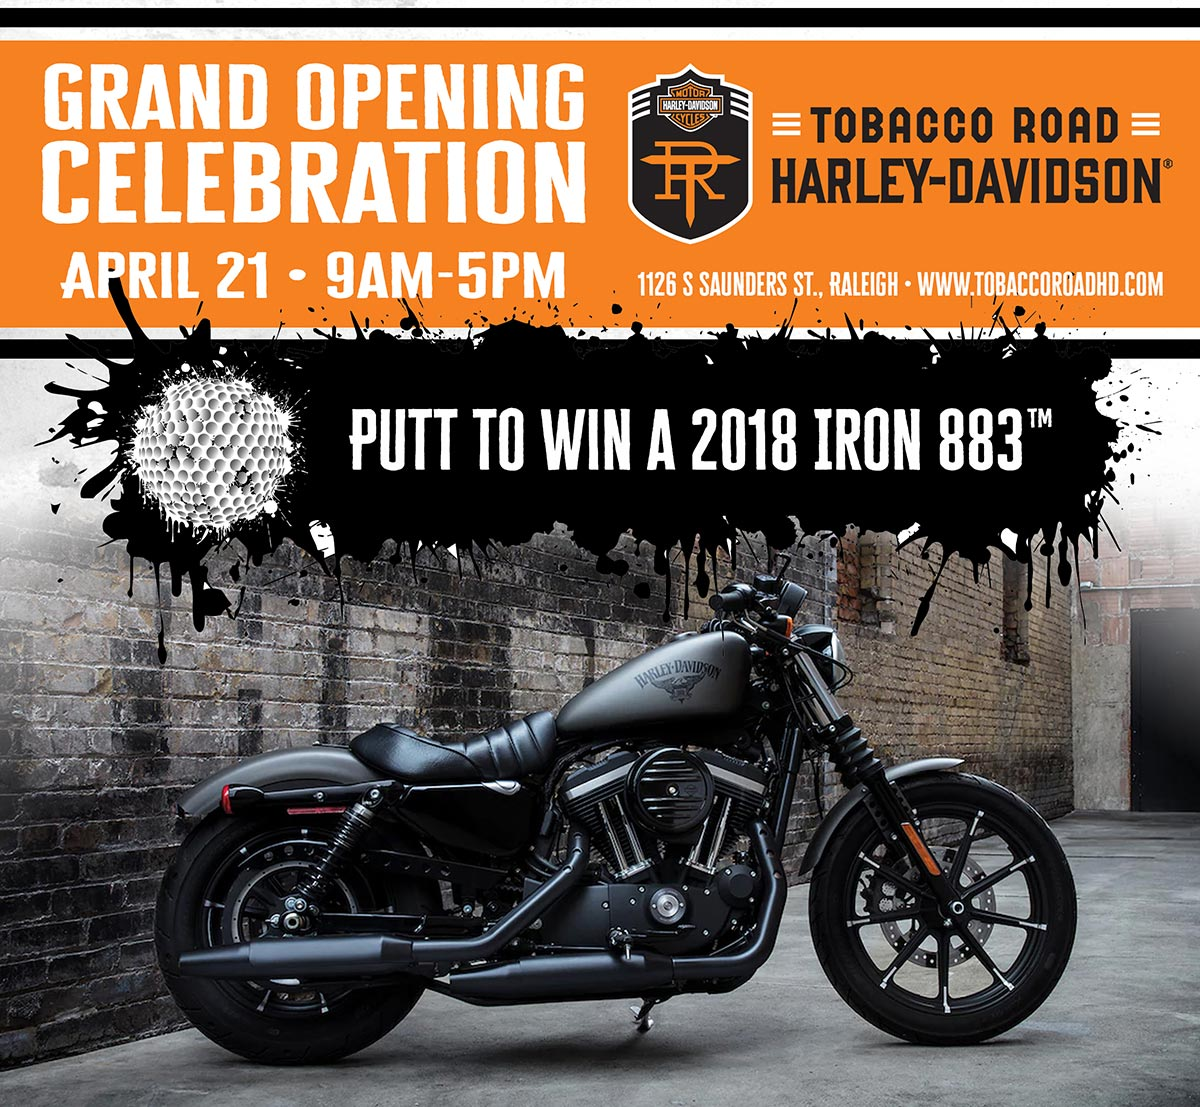 Putt to win a 2018 Harley-Davidson® Iron 883™ Saturday at the Tobacco Road Harley-Davidson Grand Opening Celebration!